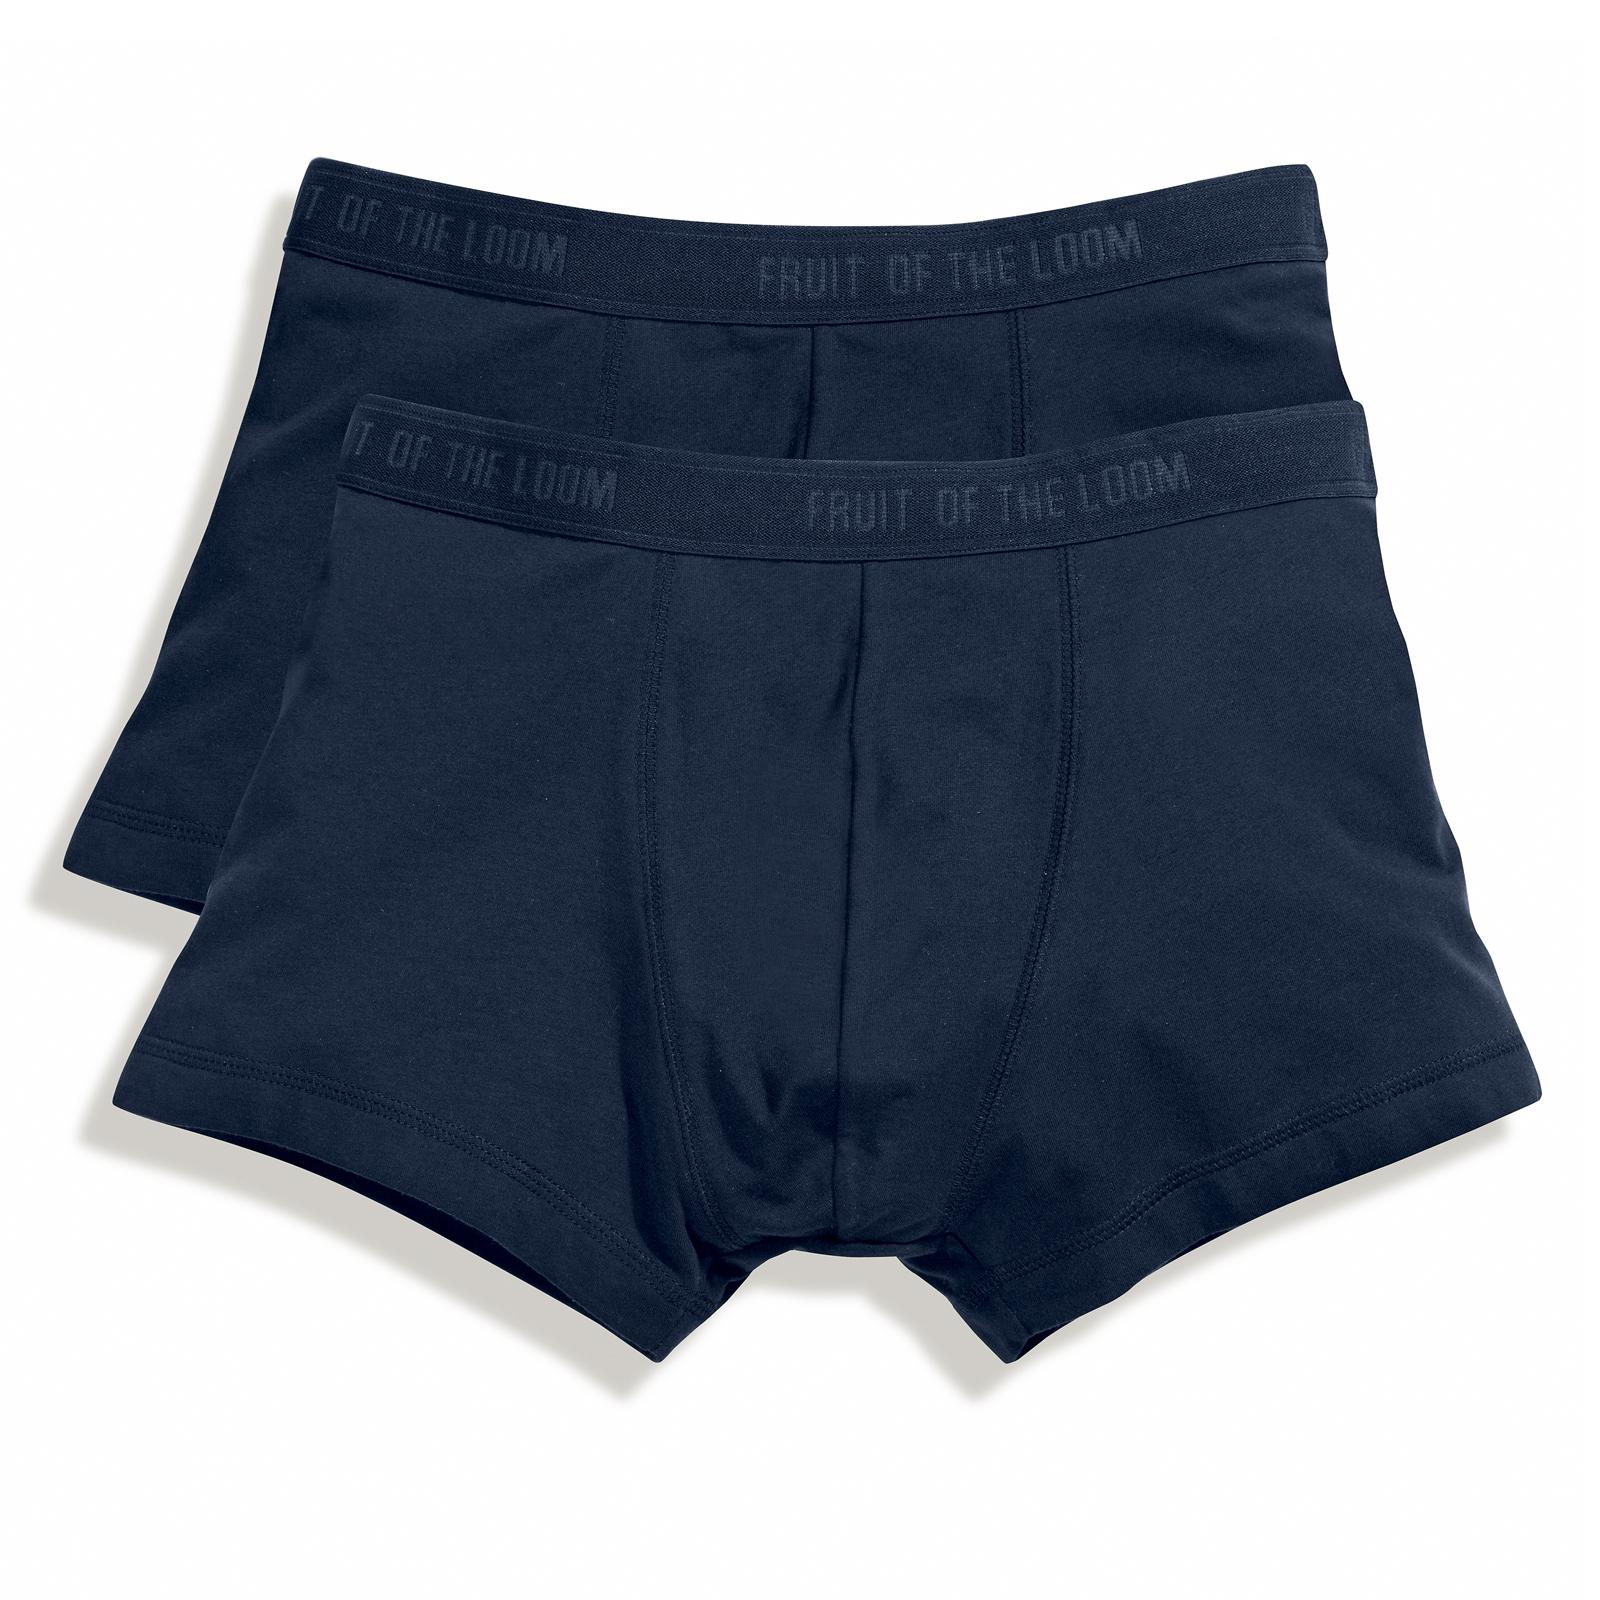 Buy Fruit of the Loom Men's Brief (Pack of 3) and other Briefs at besteupla.gq Our wide selection is elegible for free shipping and free returns.